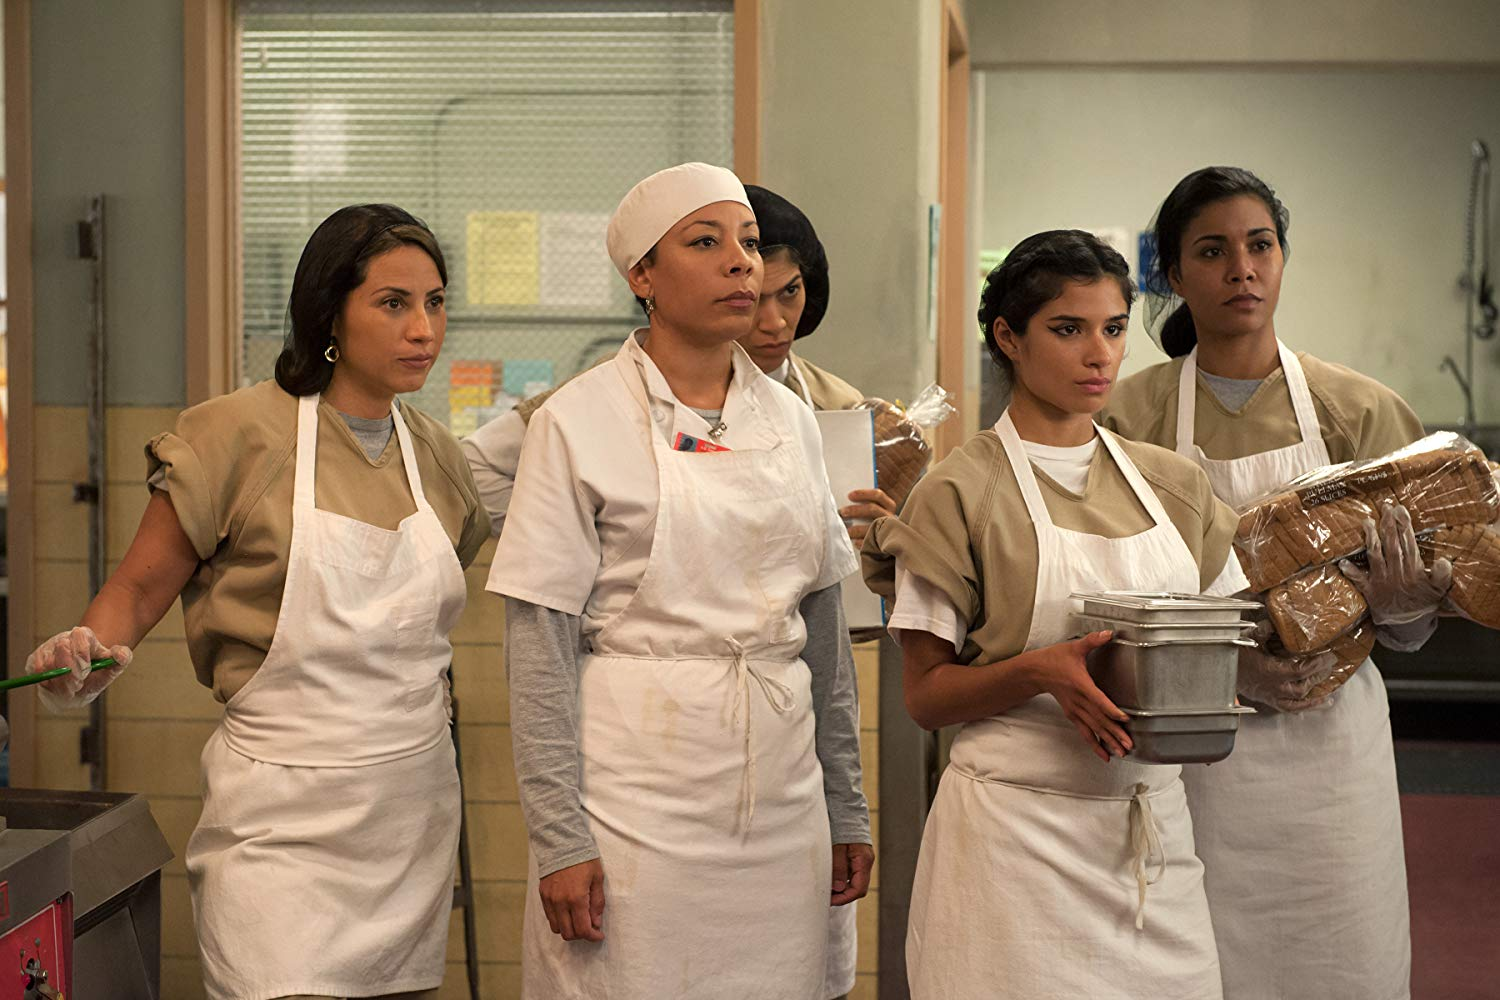 Laura Gómez, Selenis Leyva, Elizabeth Rodriguez, Jessica Pimentel, and Diane Guerrero in 'Orange Is the New Black' (2013) (Source: IMDB)